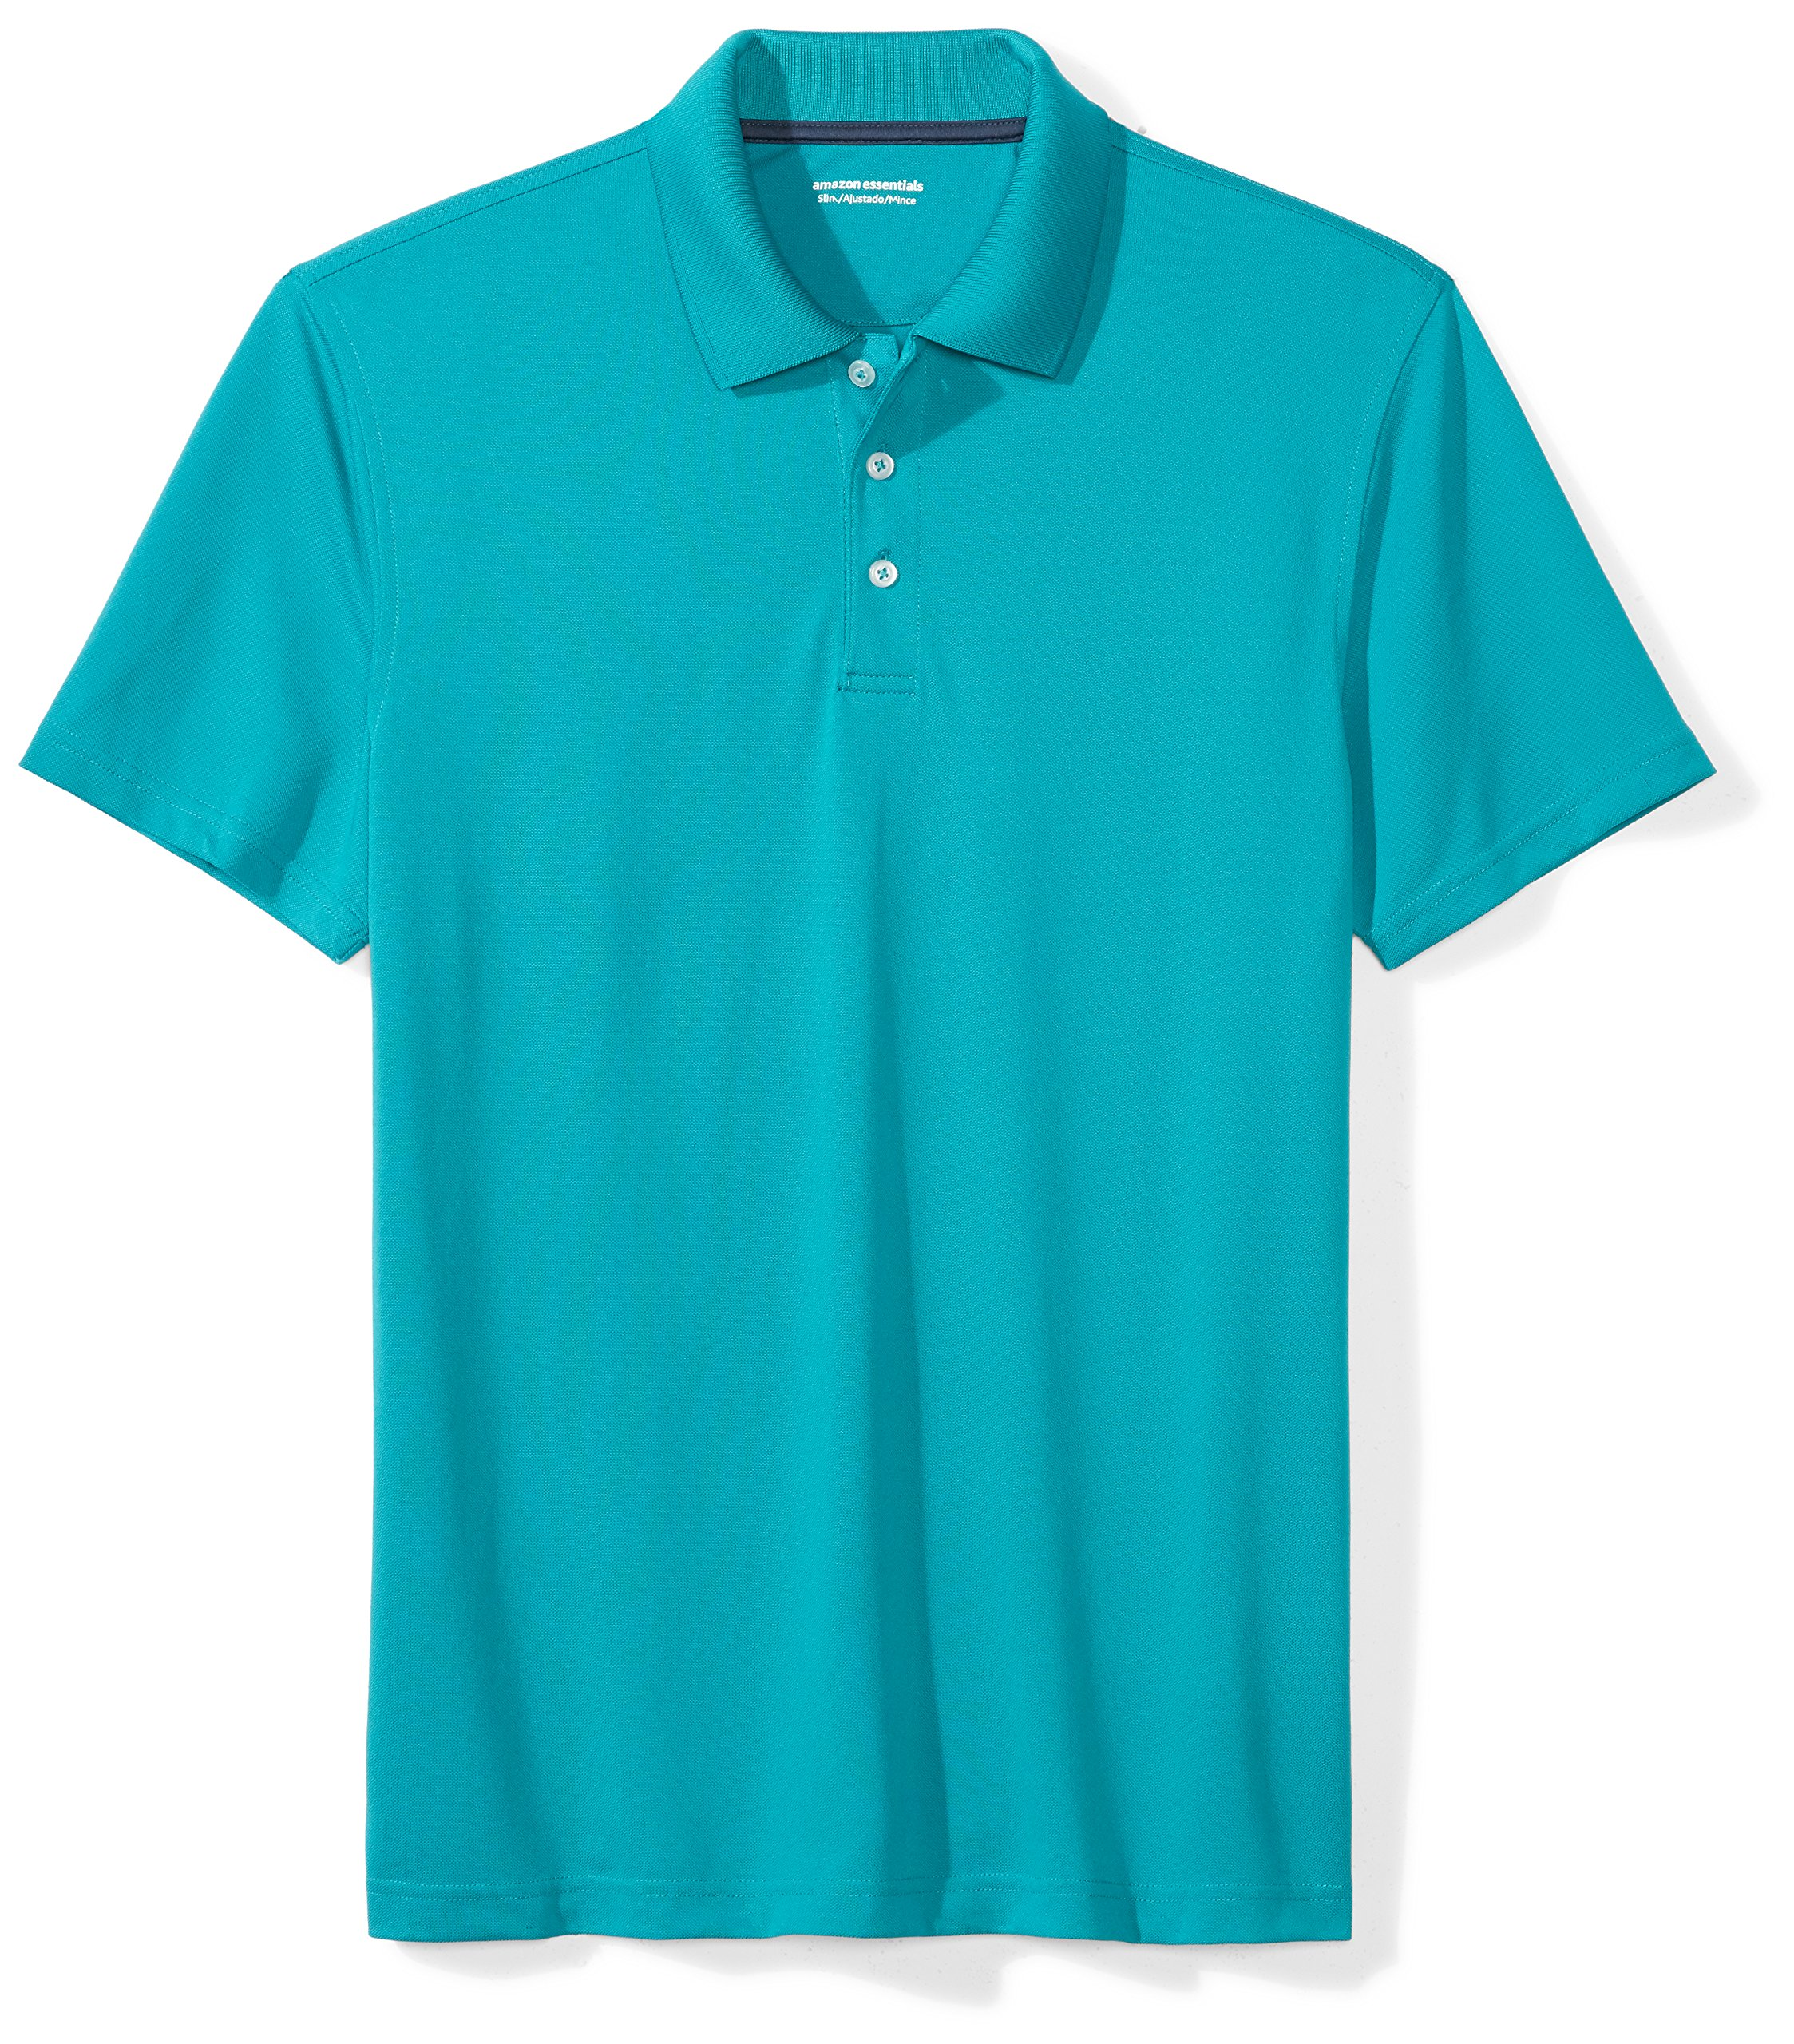 Amazon Essentials Men's Slim-Fit Quick-Dry Golf Polo Shirt, Dark Teal, Small by Amazon Essentials